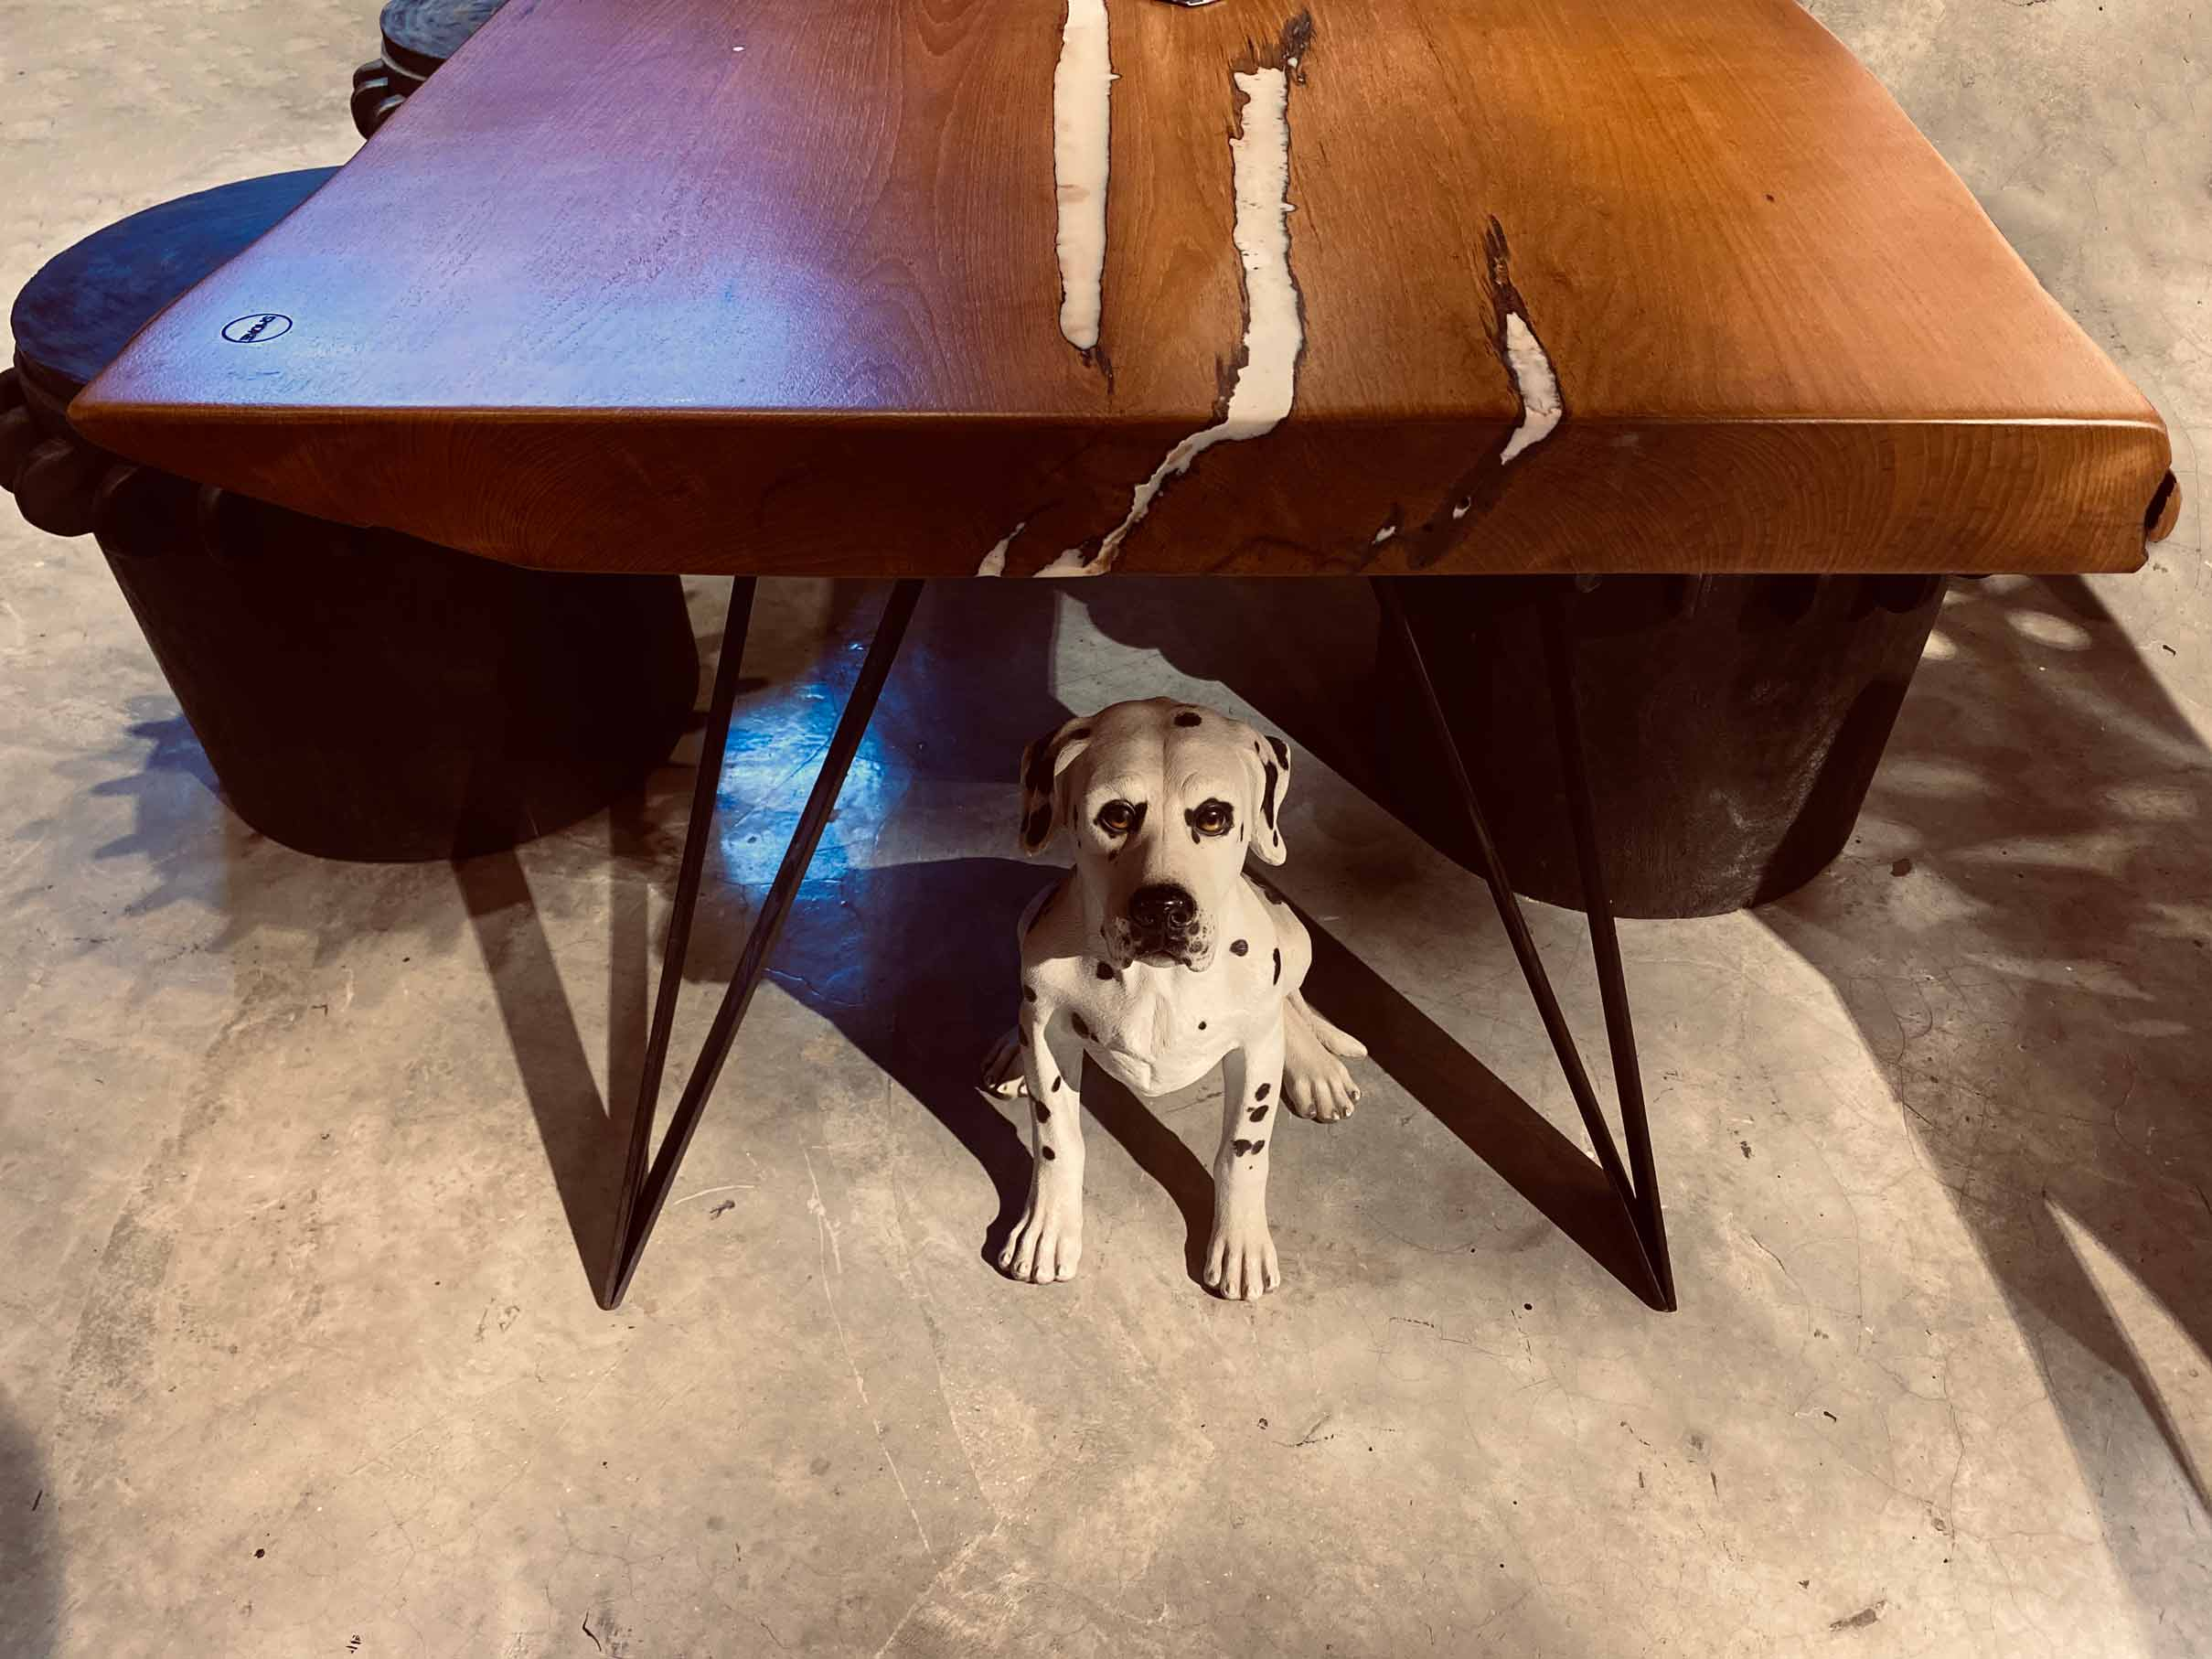 handcrafted furniture Singapore garfunker dining table